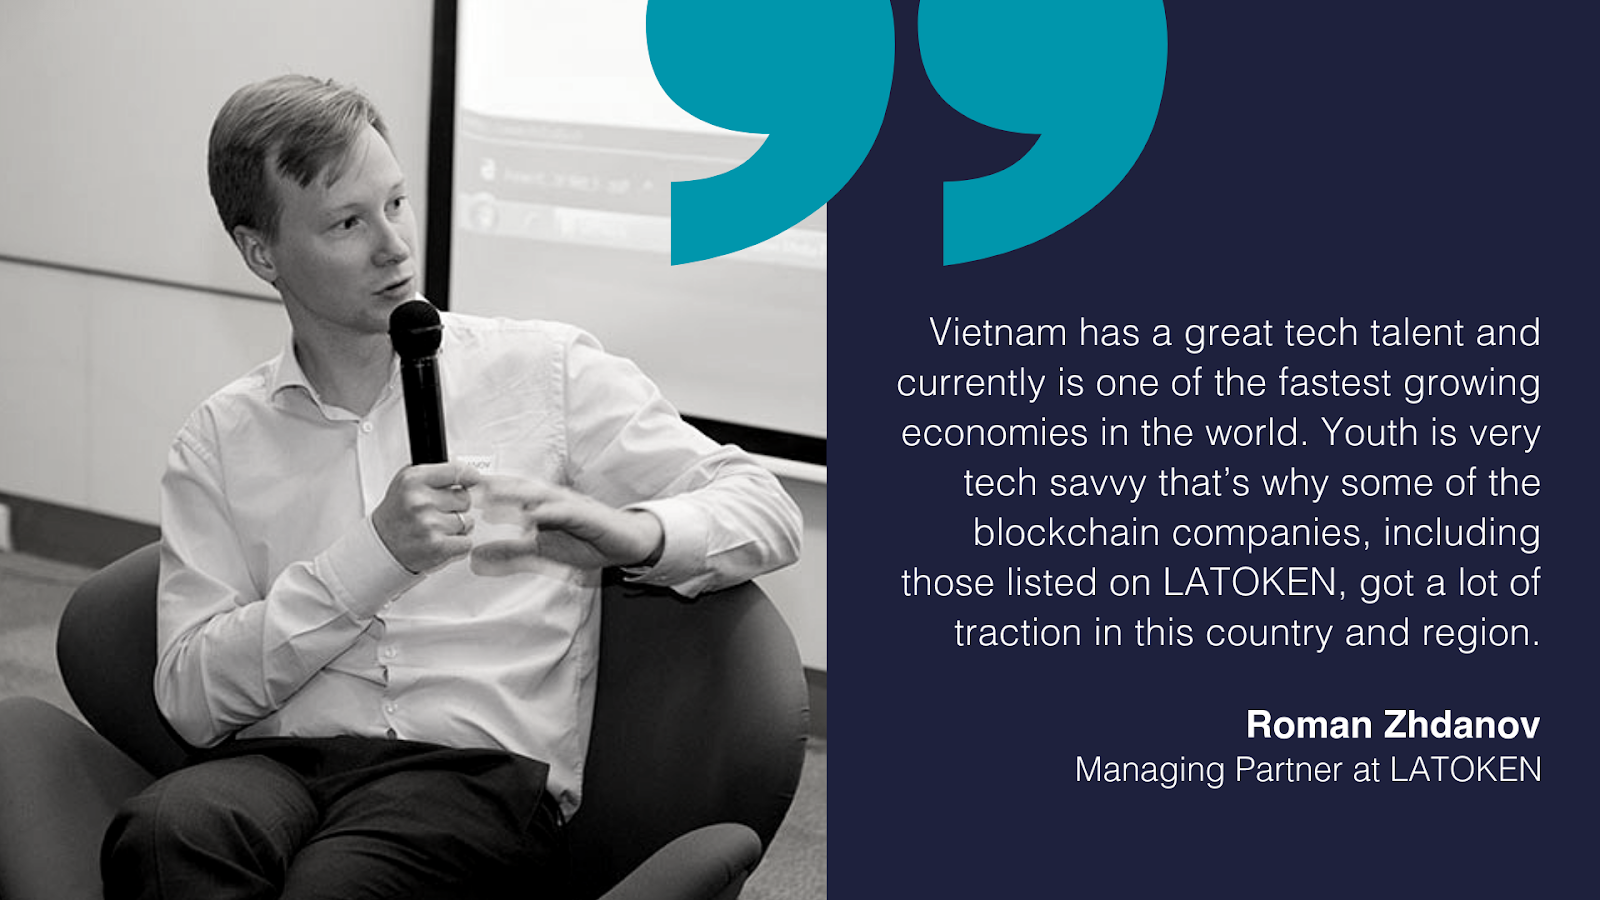 Behind The Curtain Of Vietnam's Booming Economy